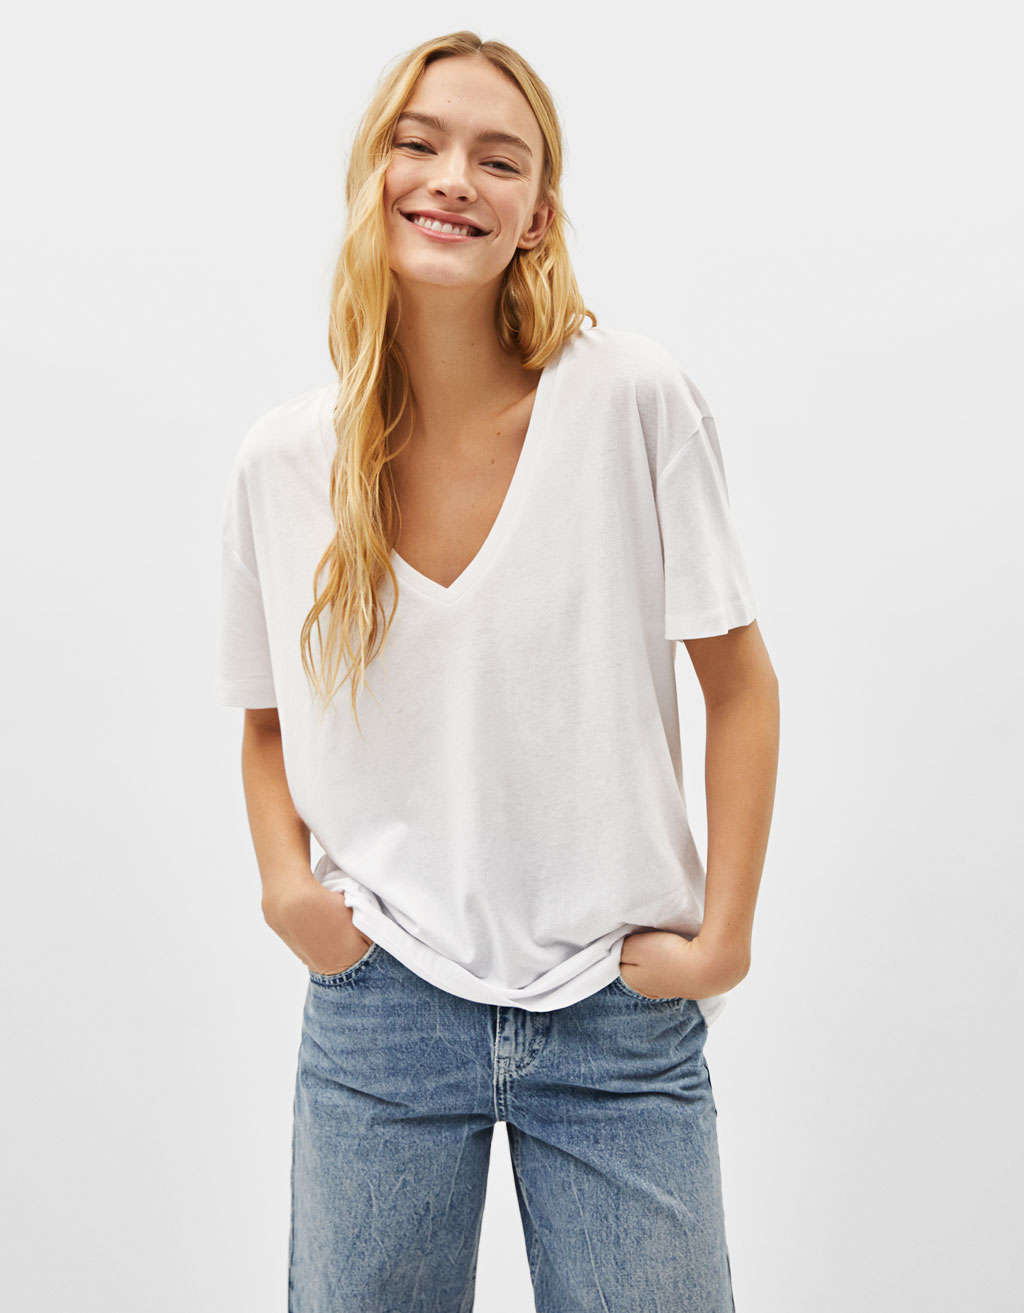 T-Shirts - COLLECTION - WOMEN - Bershka Greece 4c03c2cc5